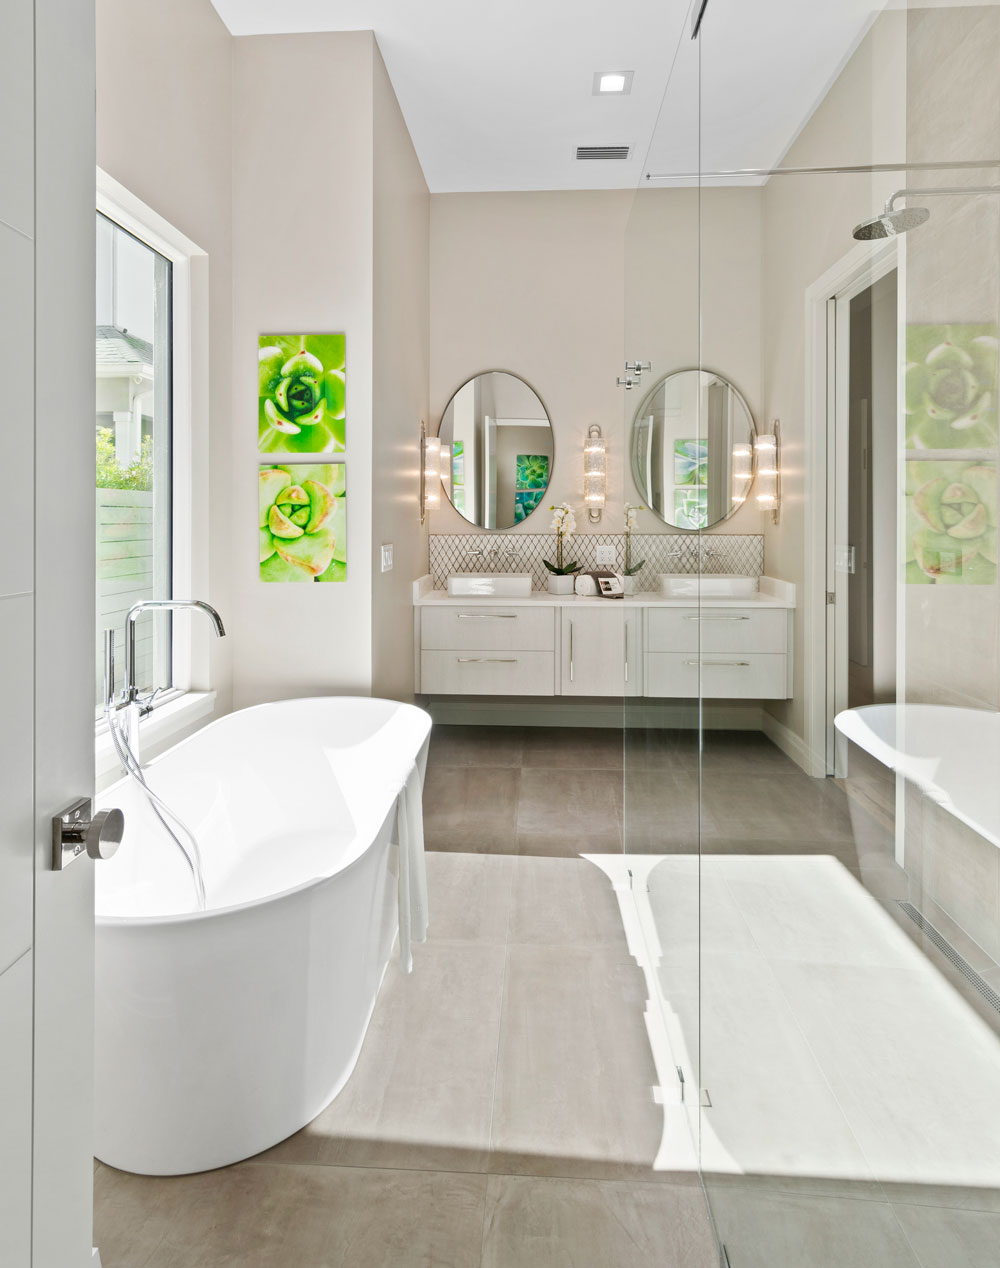 interior design header - bathroom design